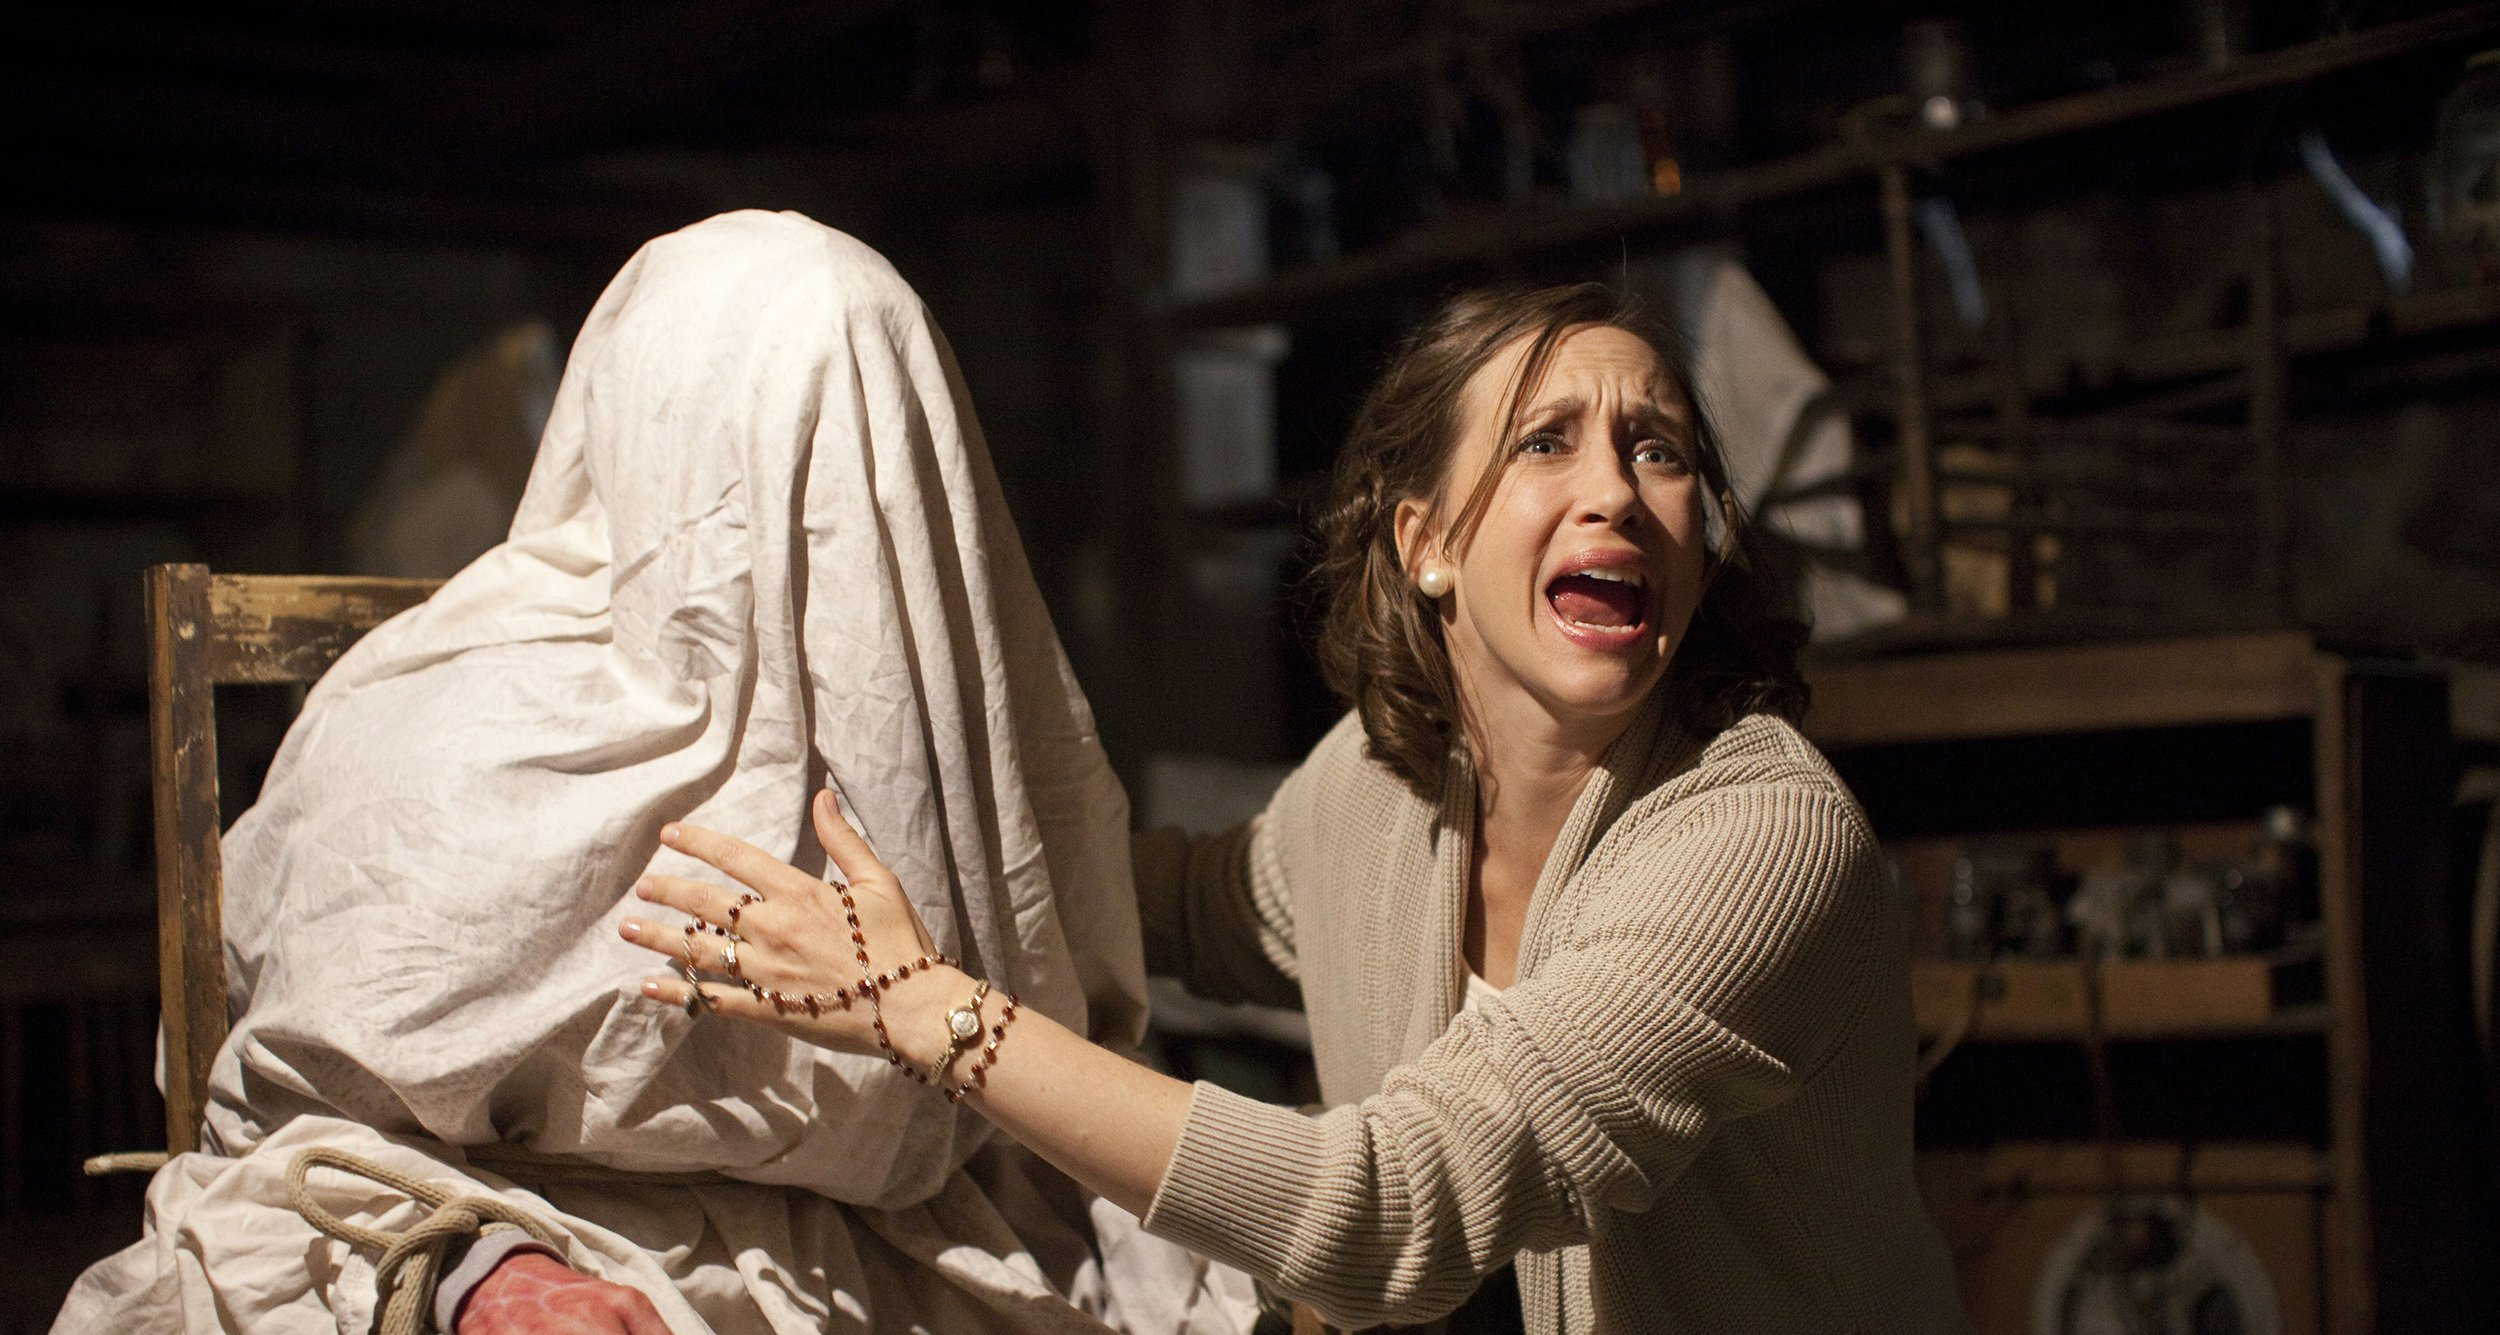 Review: The Conjuring - Slant Magazine